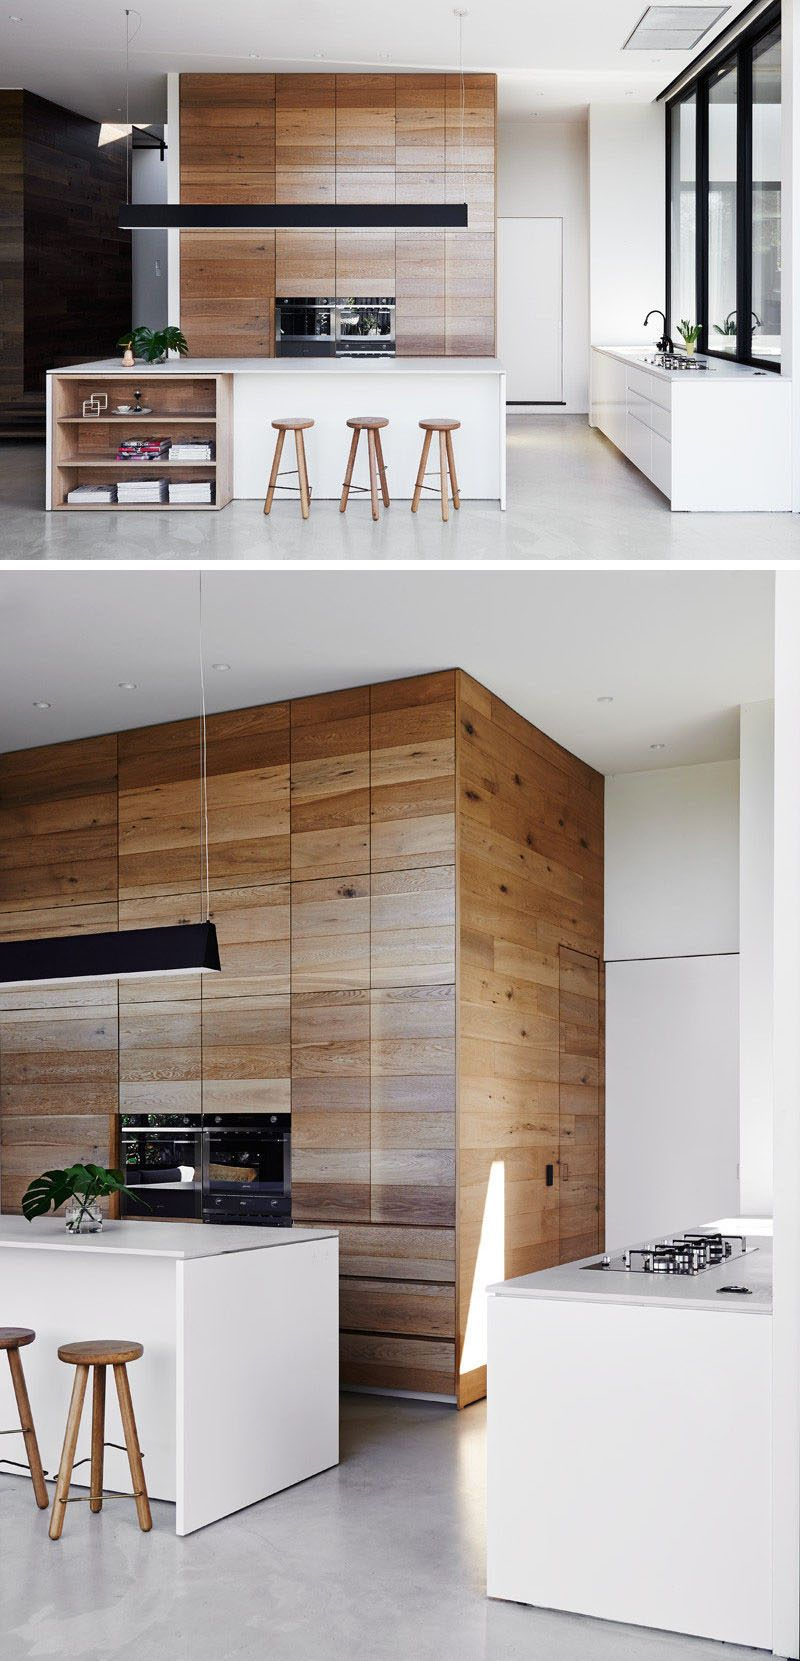 23 Pictures That Show How Concrete Floors Have been Used Throughout ...